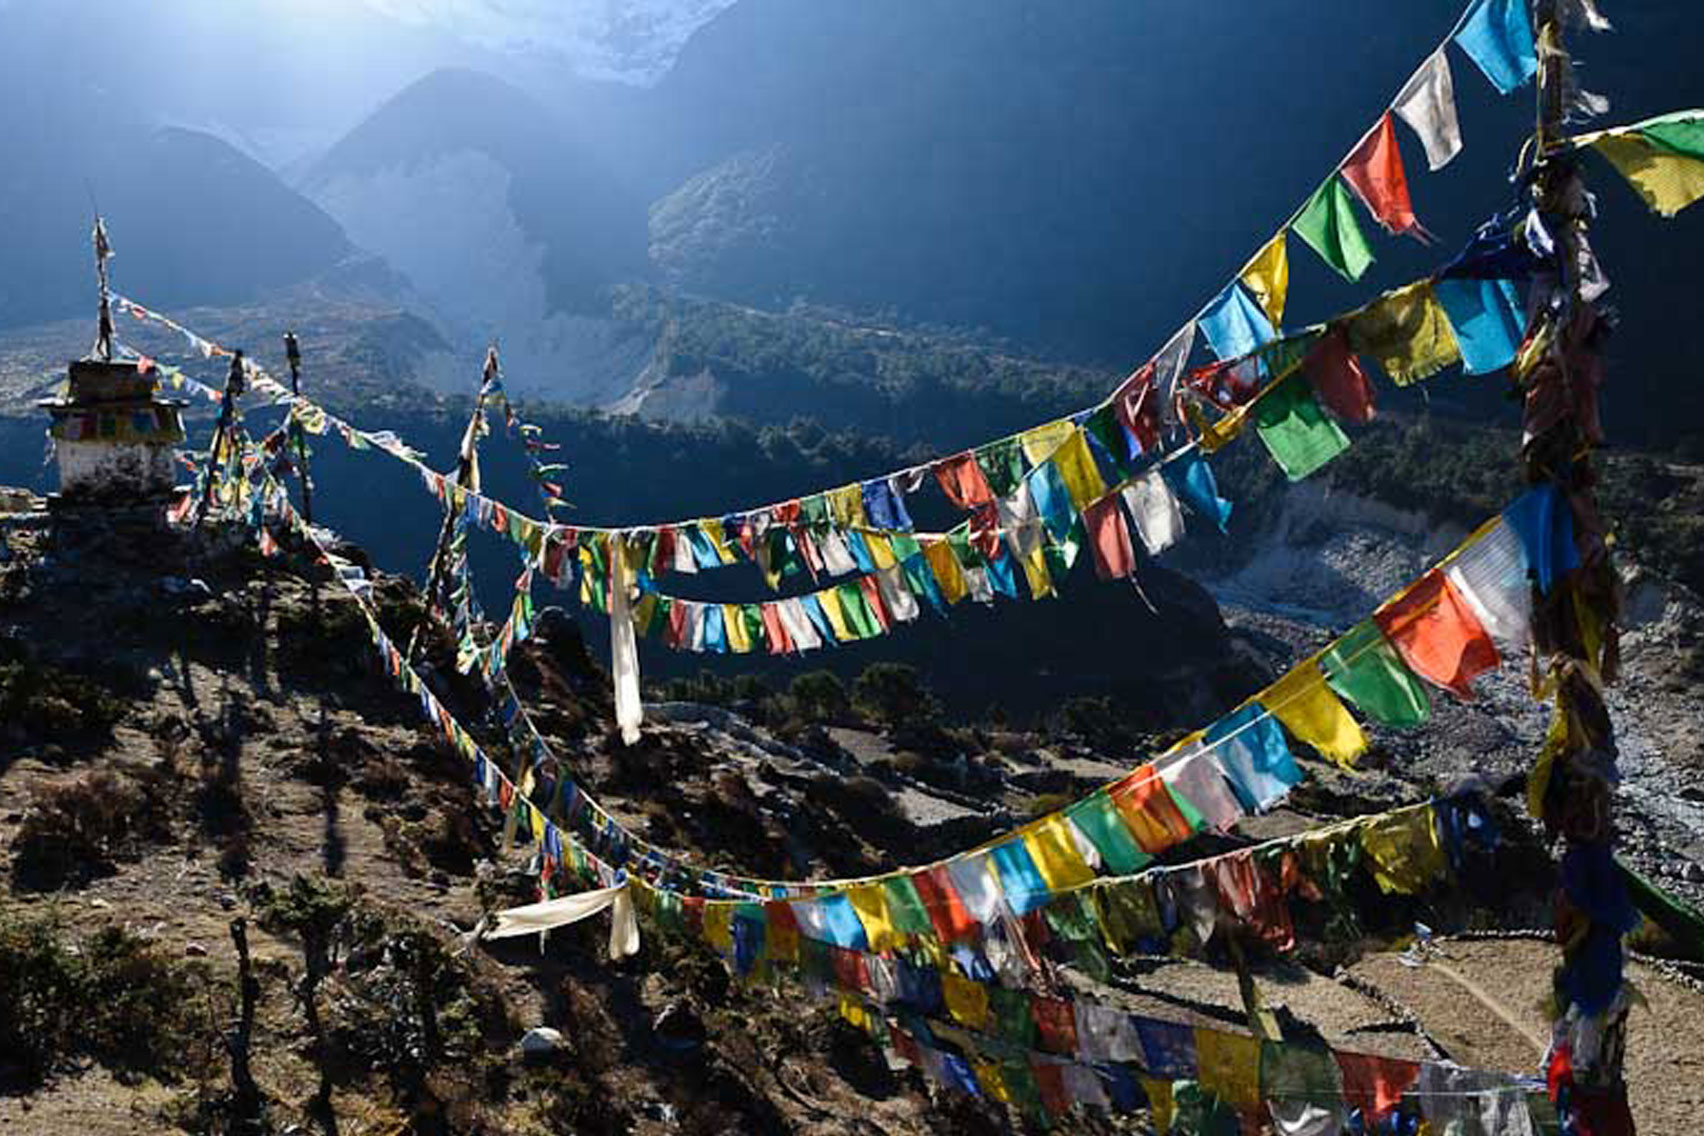 Day 7: Trek from Phortse (3800m) to Pangboche (3hrs, 4000m)